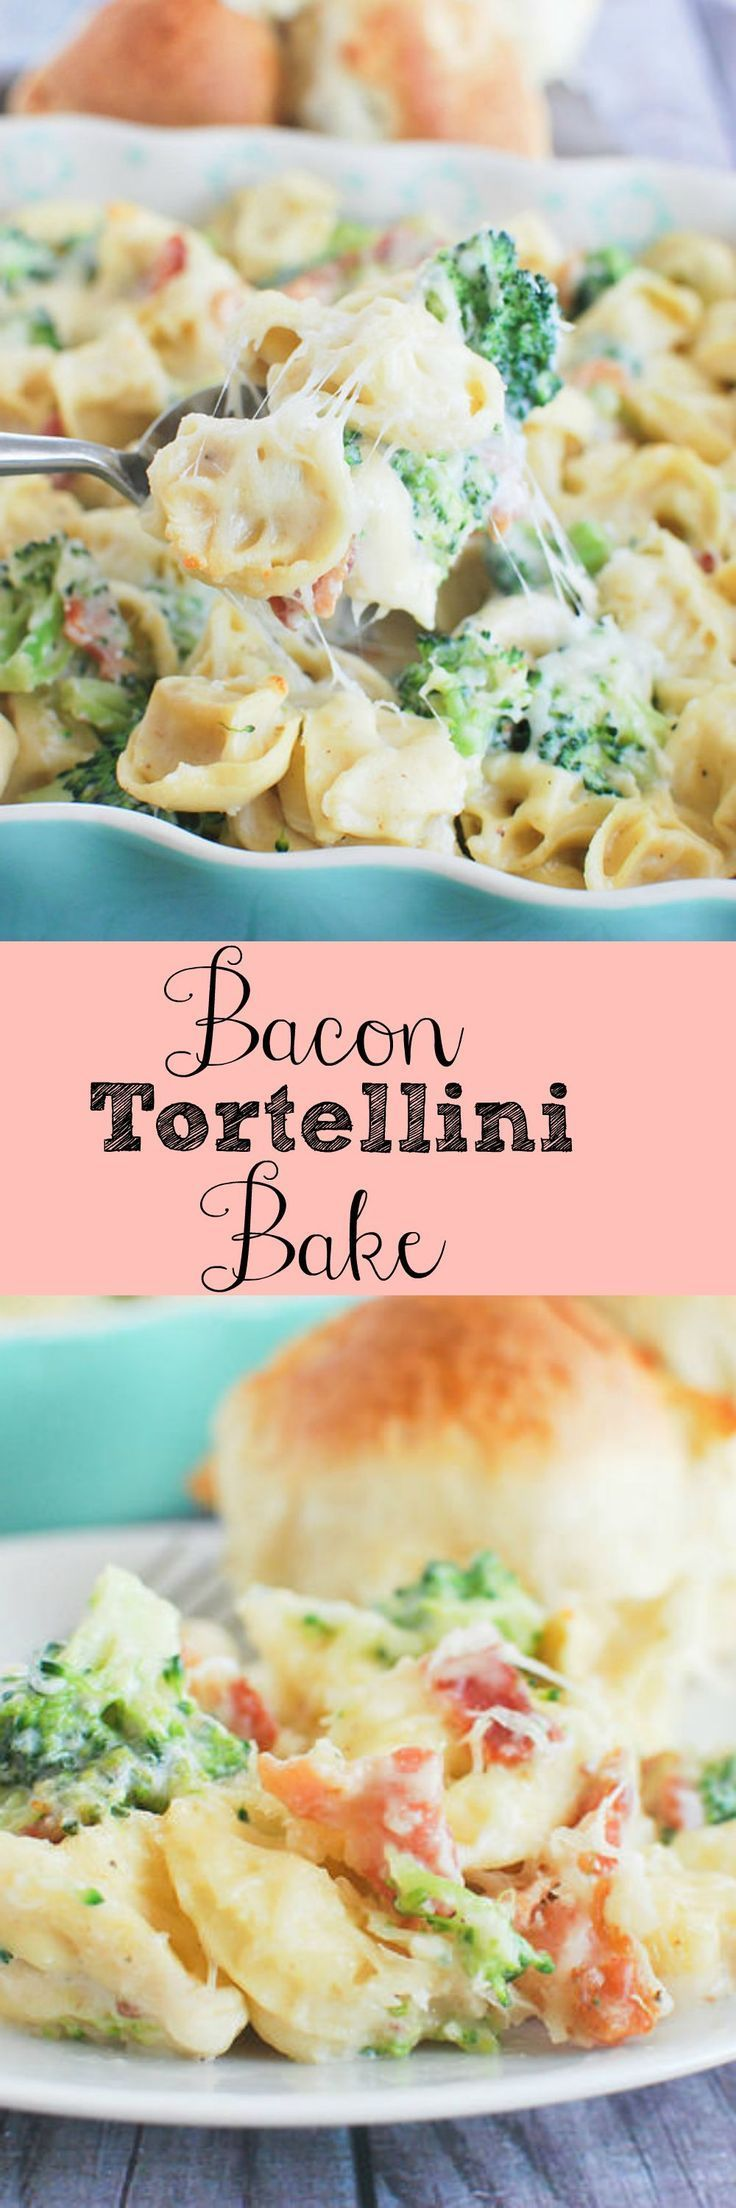 Bacon Tortellini Bake - delicious 30 minute meal!